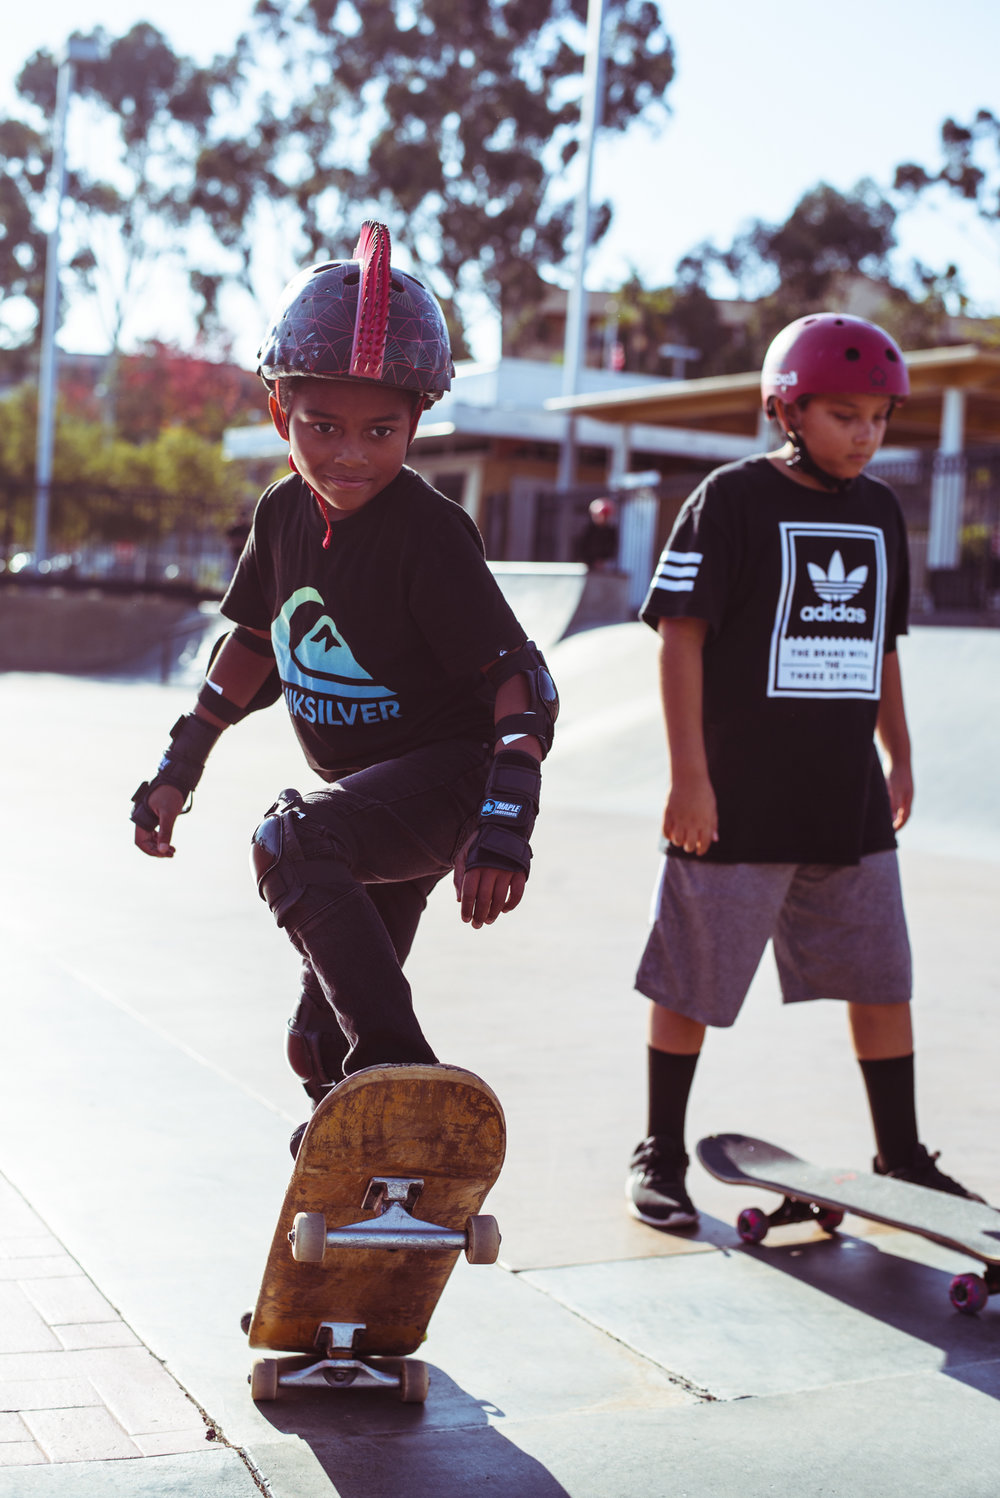 Skateboard Birthday Party-8.jpg